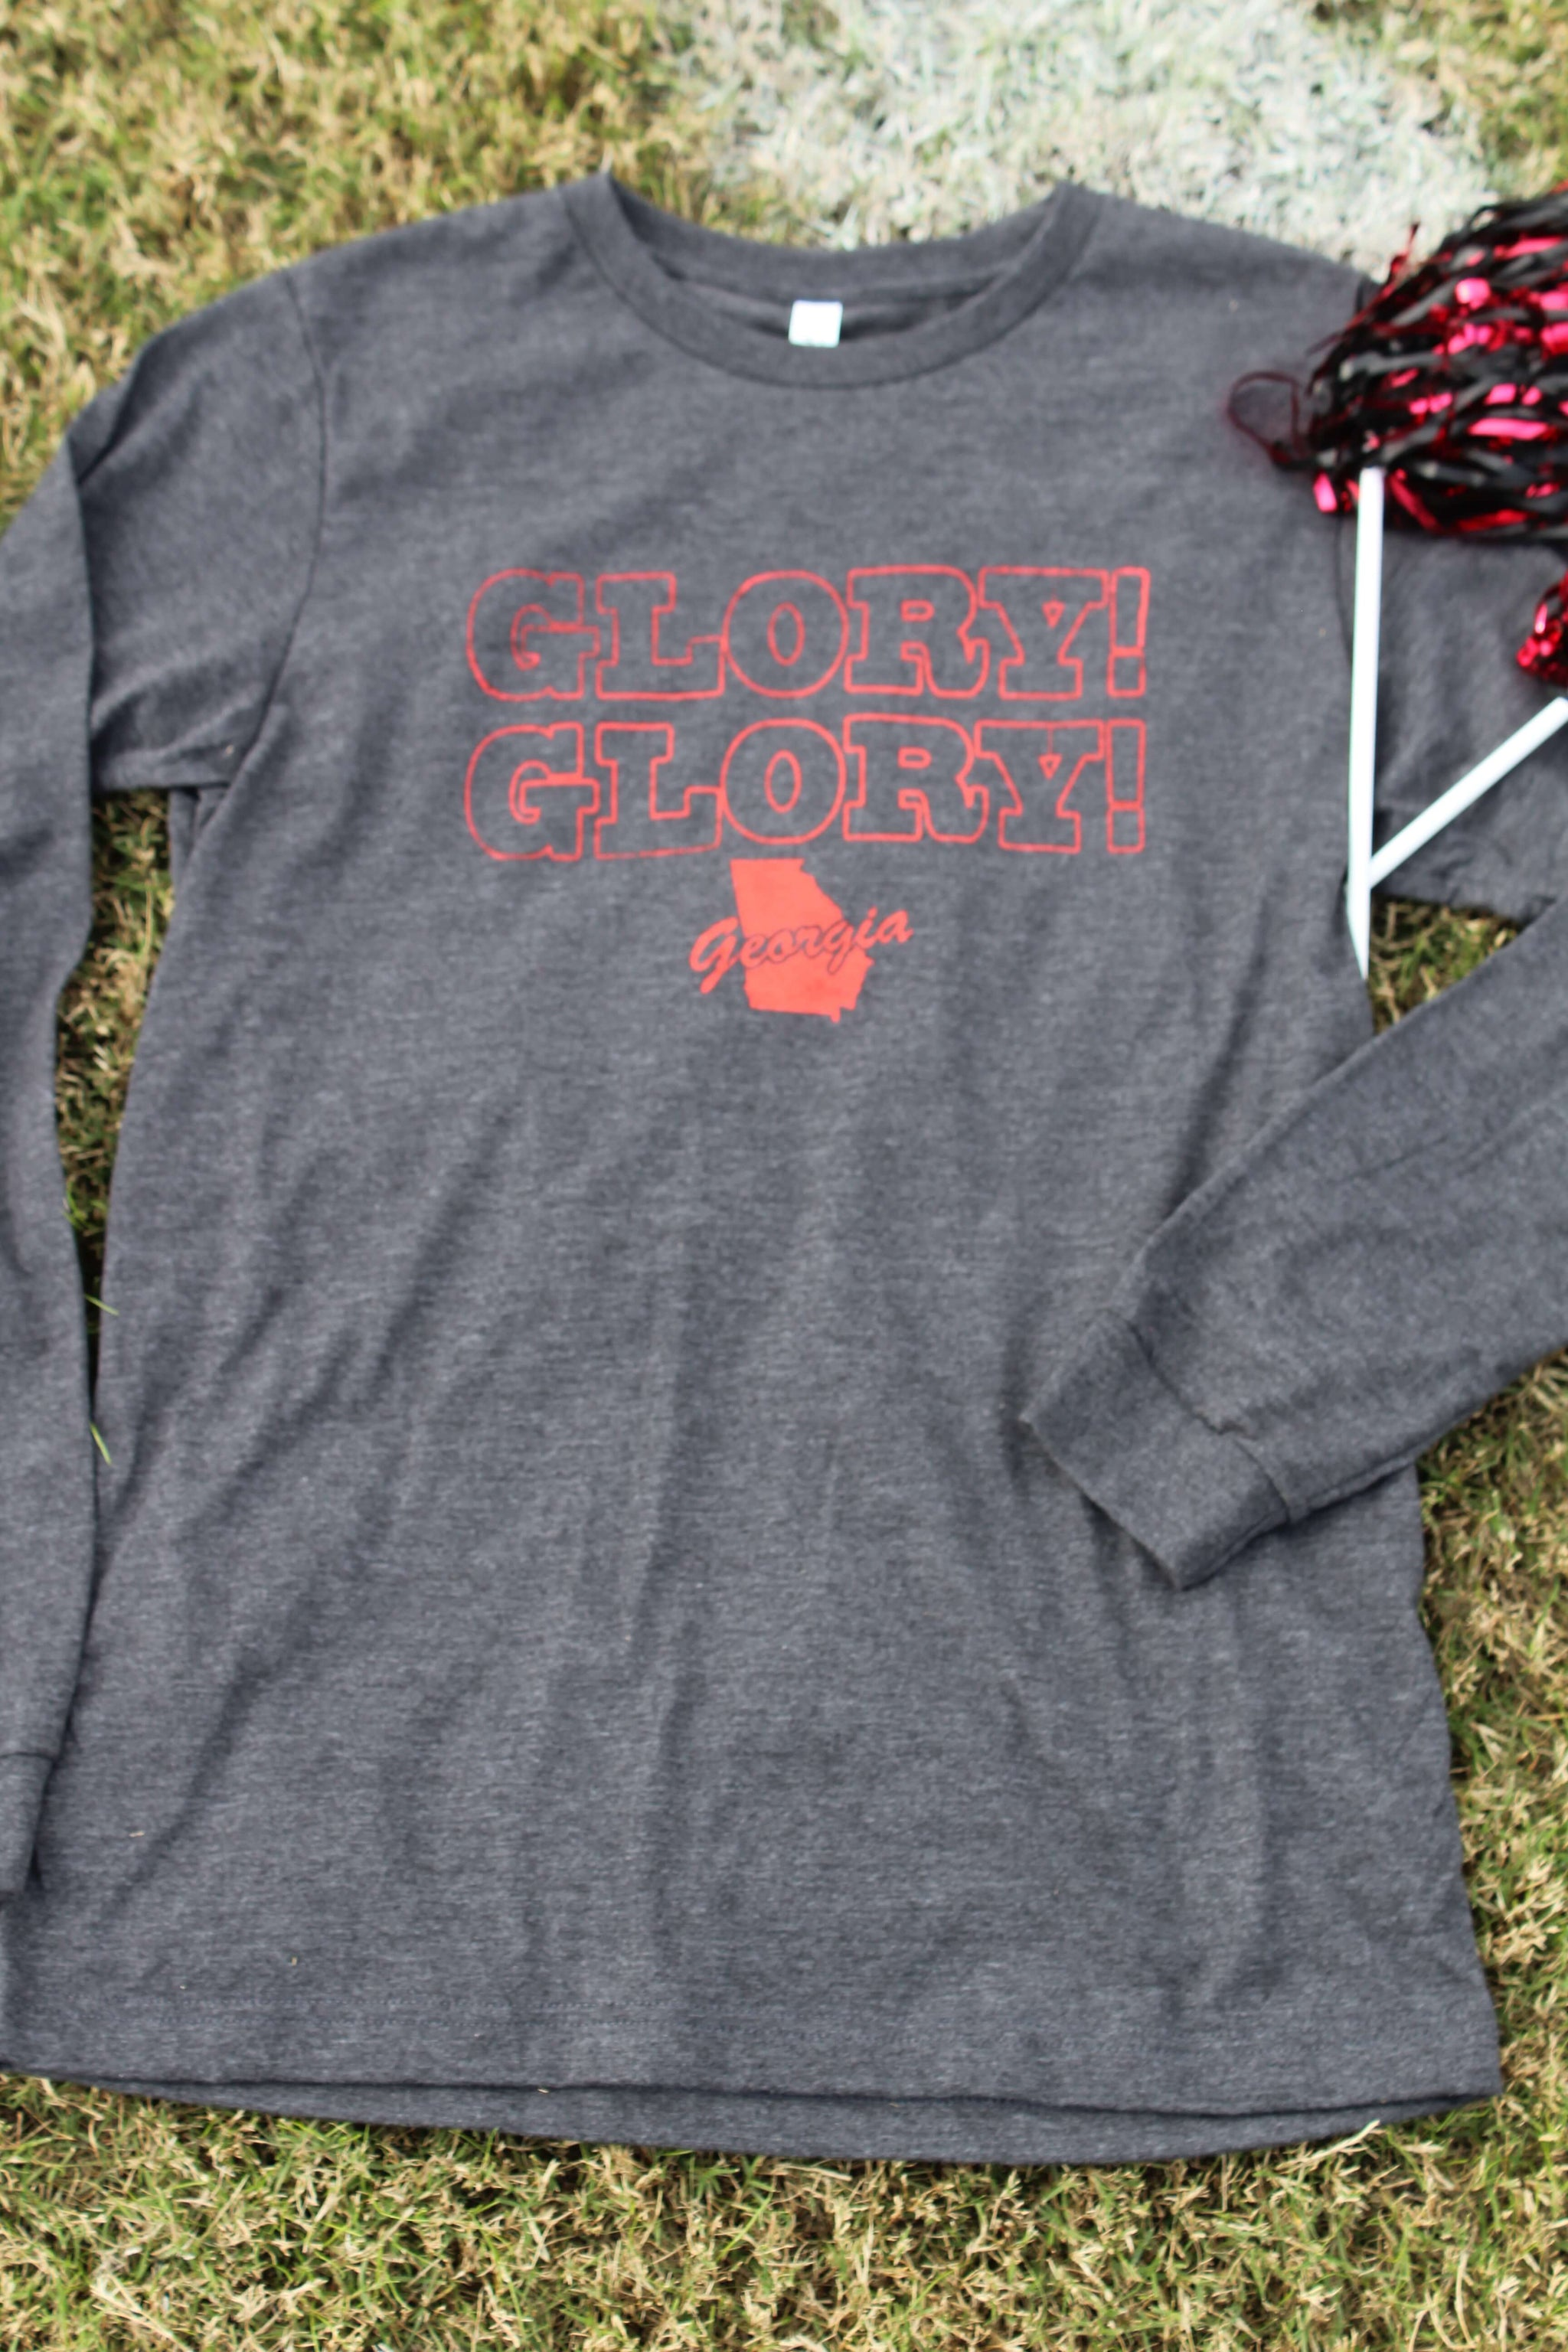 Glory! Glory! to ole Georgia long-sleeve t-shirt